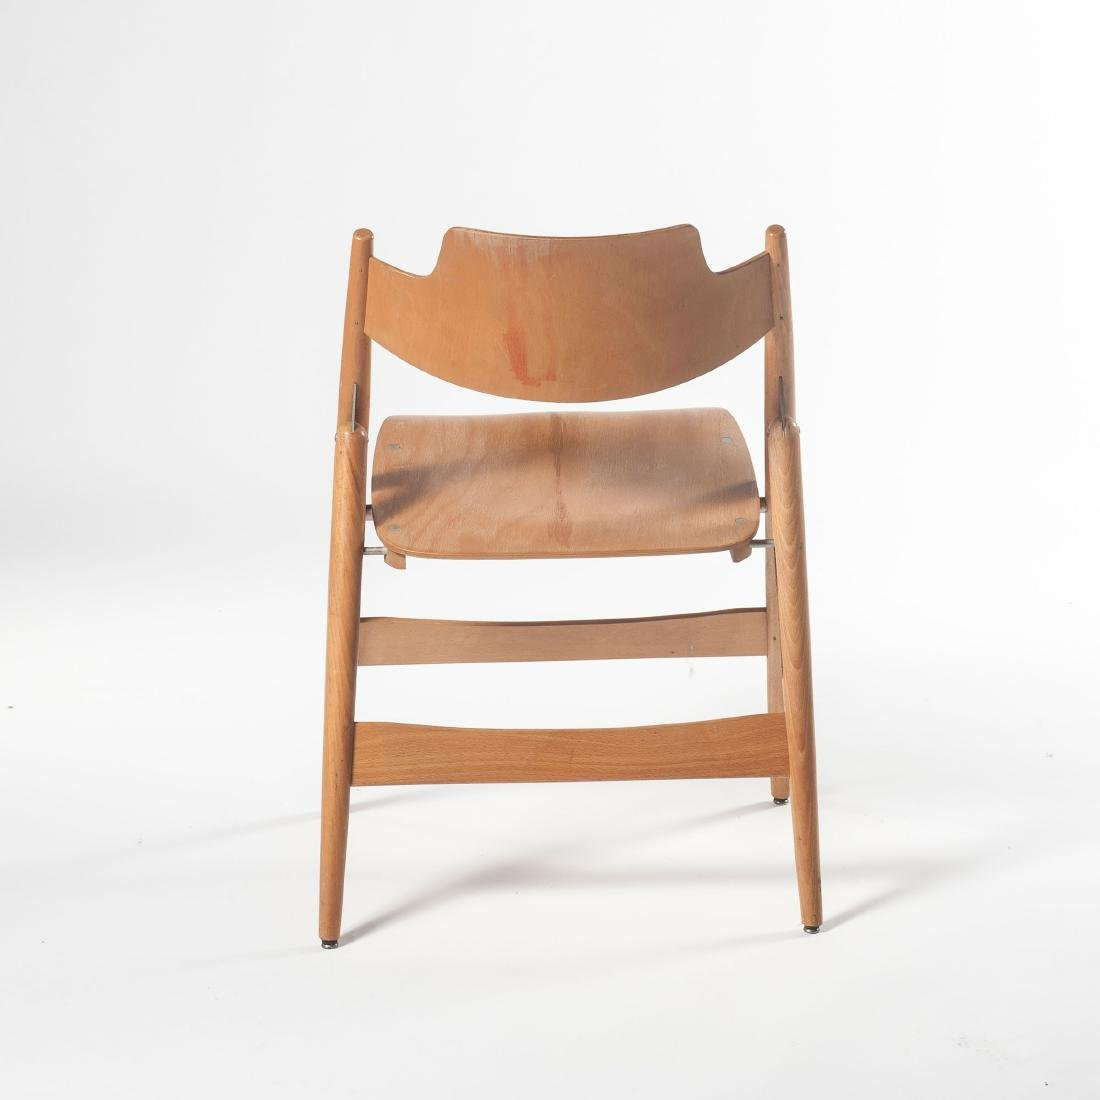 Six 'SE 18' folding chairs, 1953 - 8